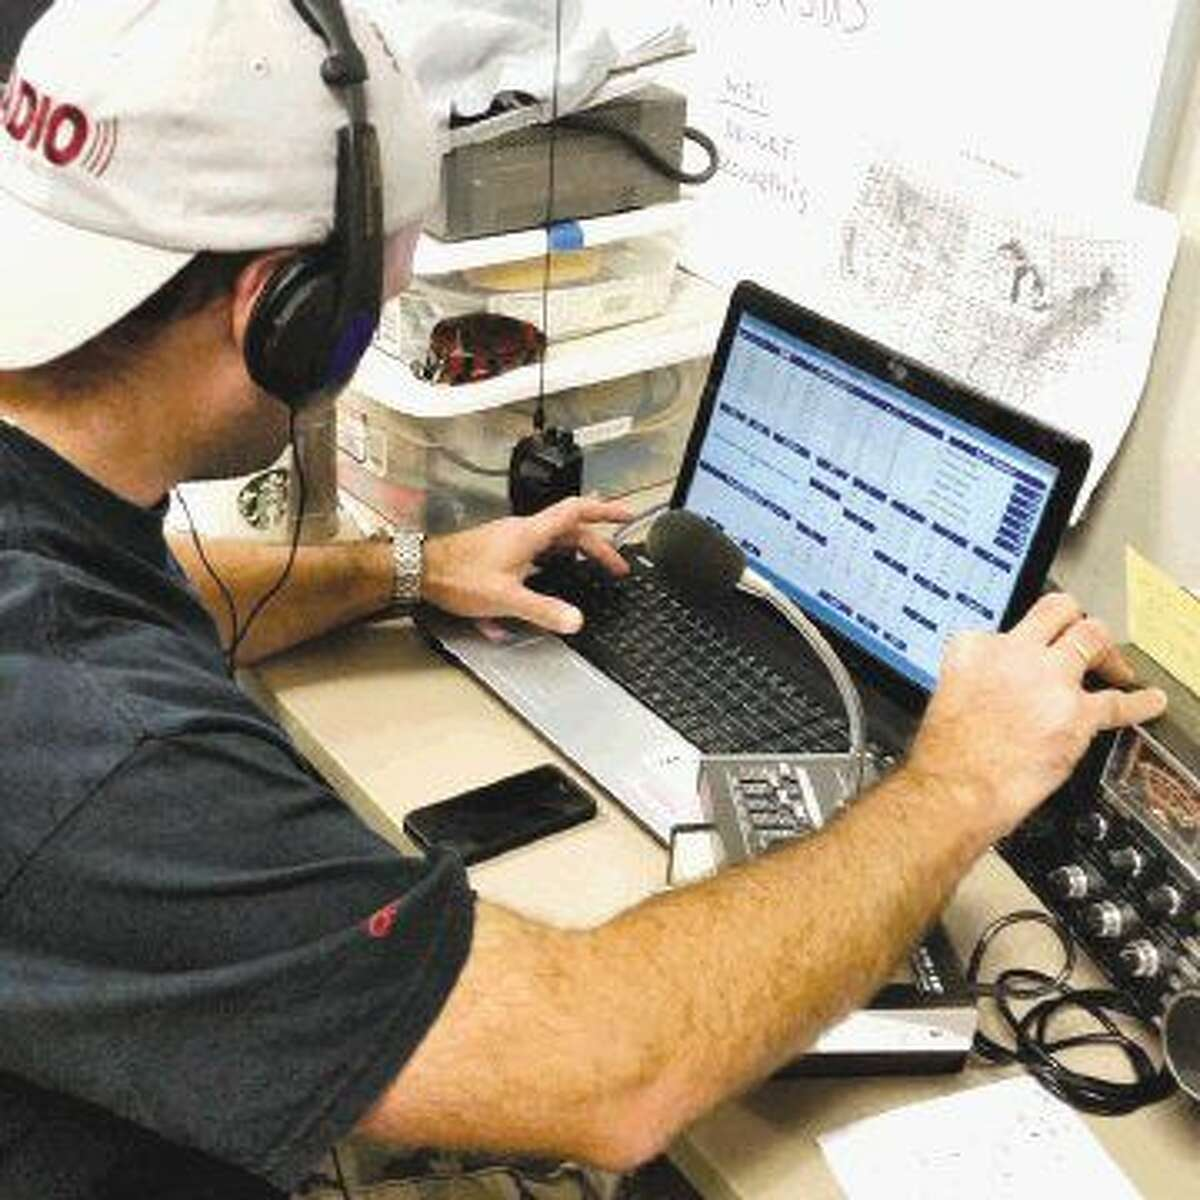 TEAC secretary Bran Sasic is logging a contact while listening to the person on the radio give his Field Day station's call sign.